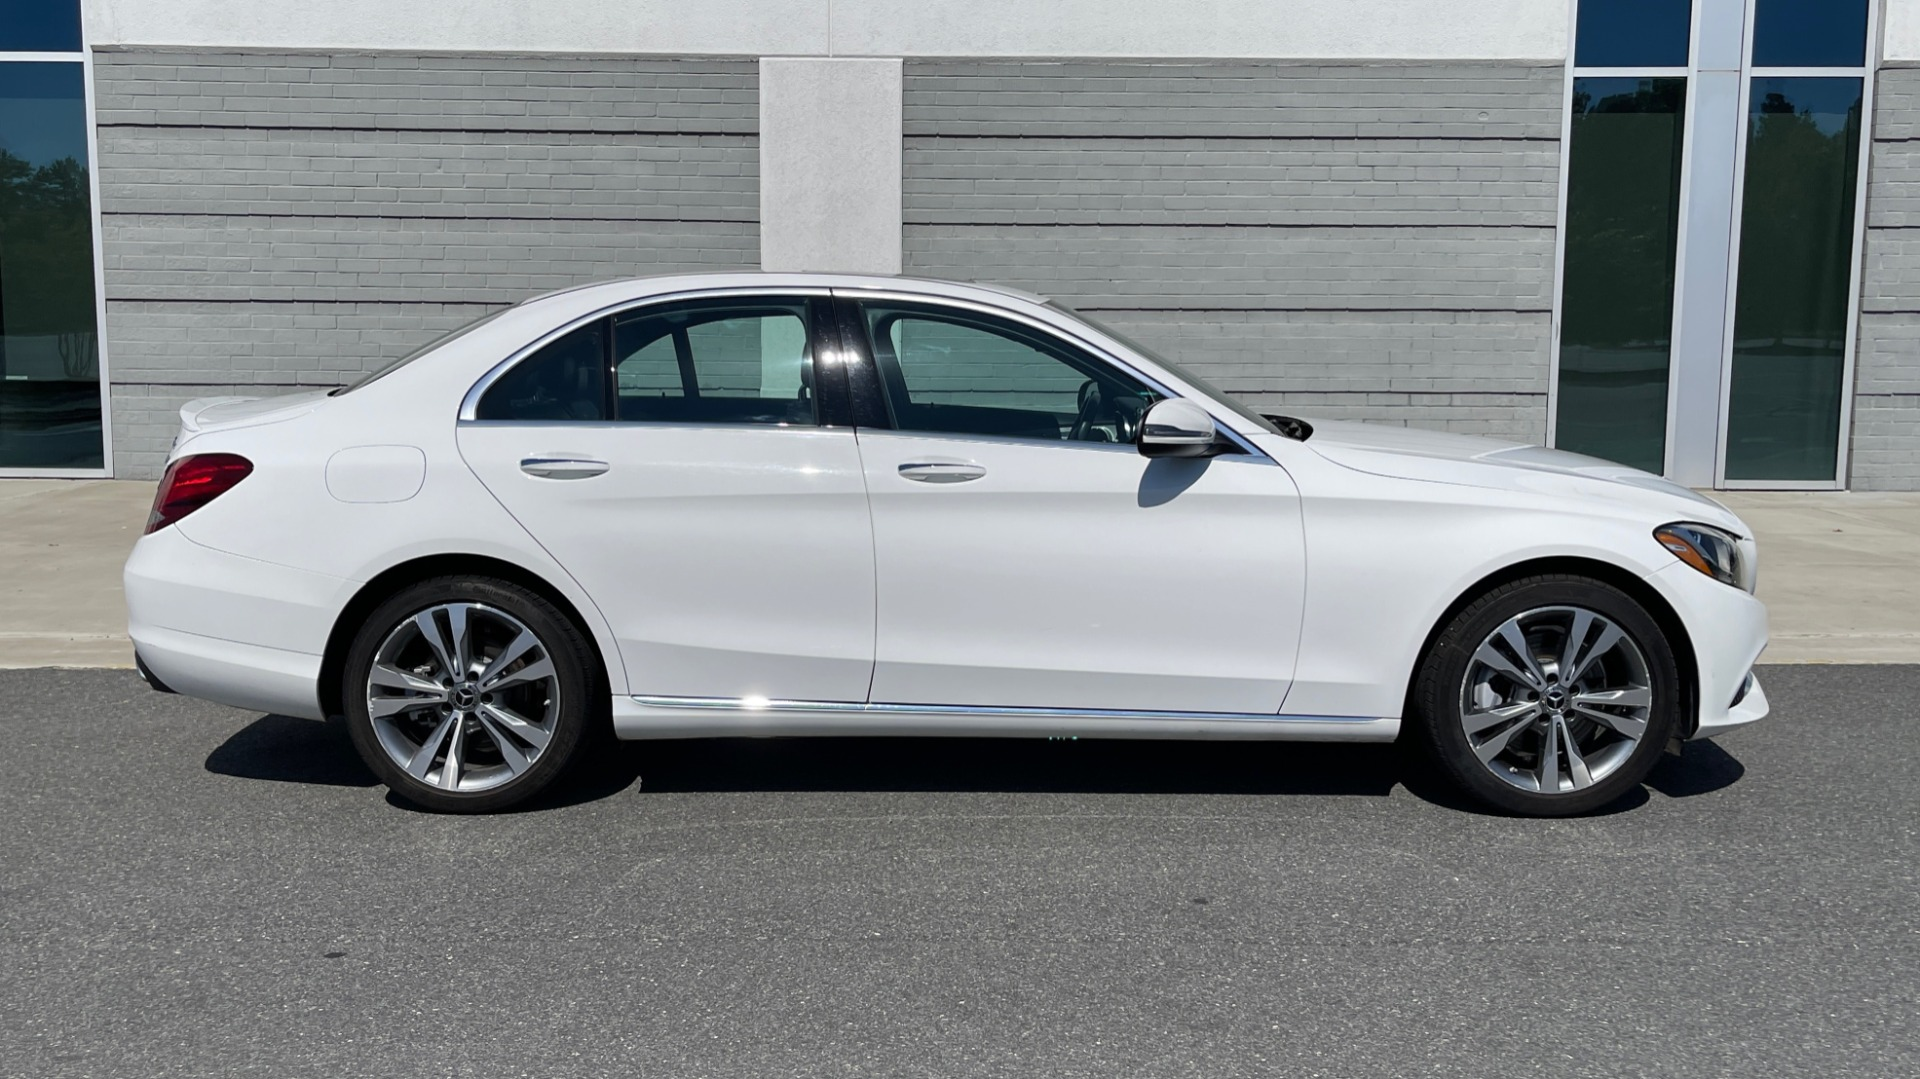 Used 2018 Mercedes-Benz C-CLASS C 300 PREMIUM / APPLE CARPLAY / KEYLESS-GO / SUNROOF / REARVIEW for sale $32,995 at Formula Imports in Charlotte NC 28227 7